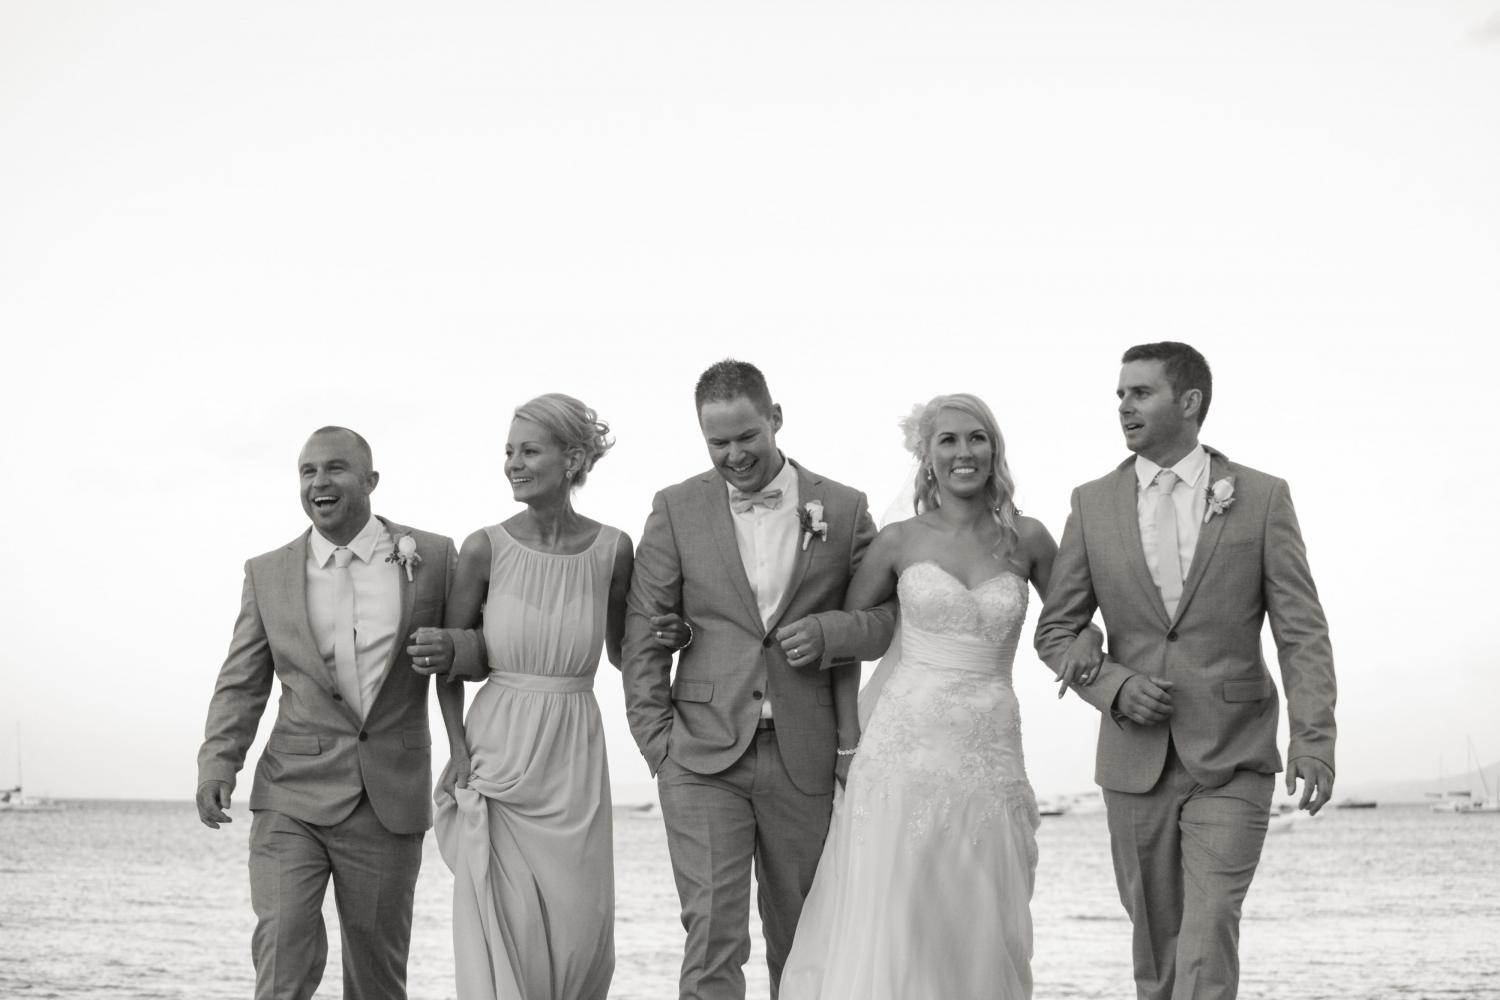 Sorrento Beach Wedding